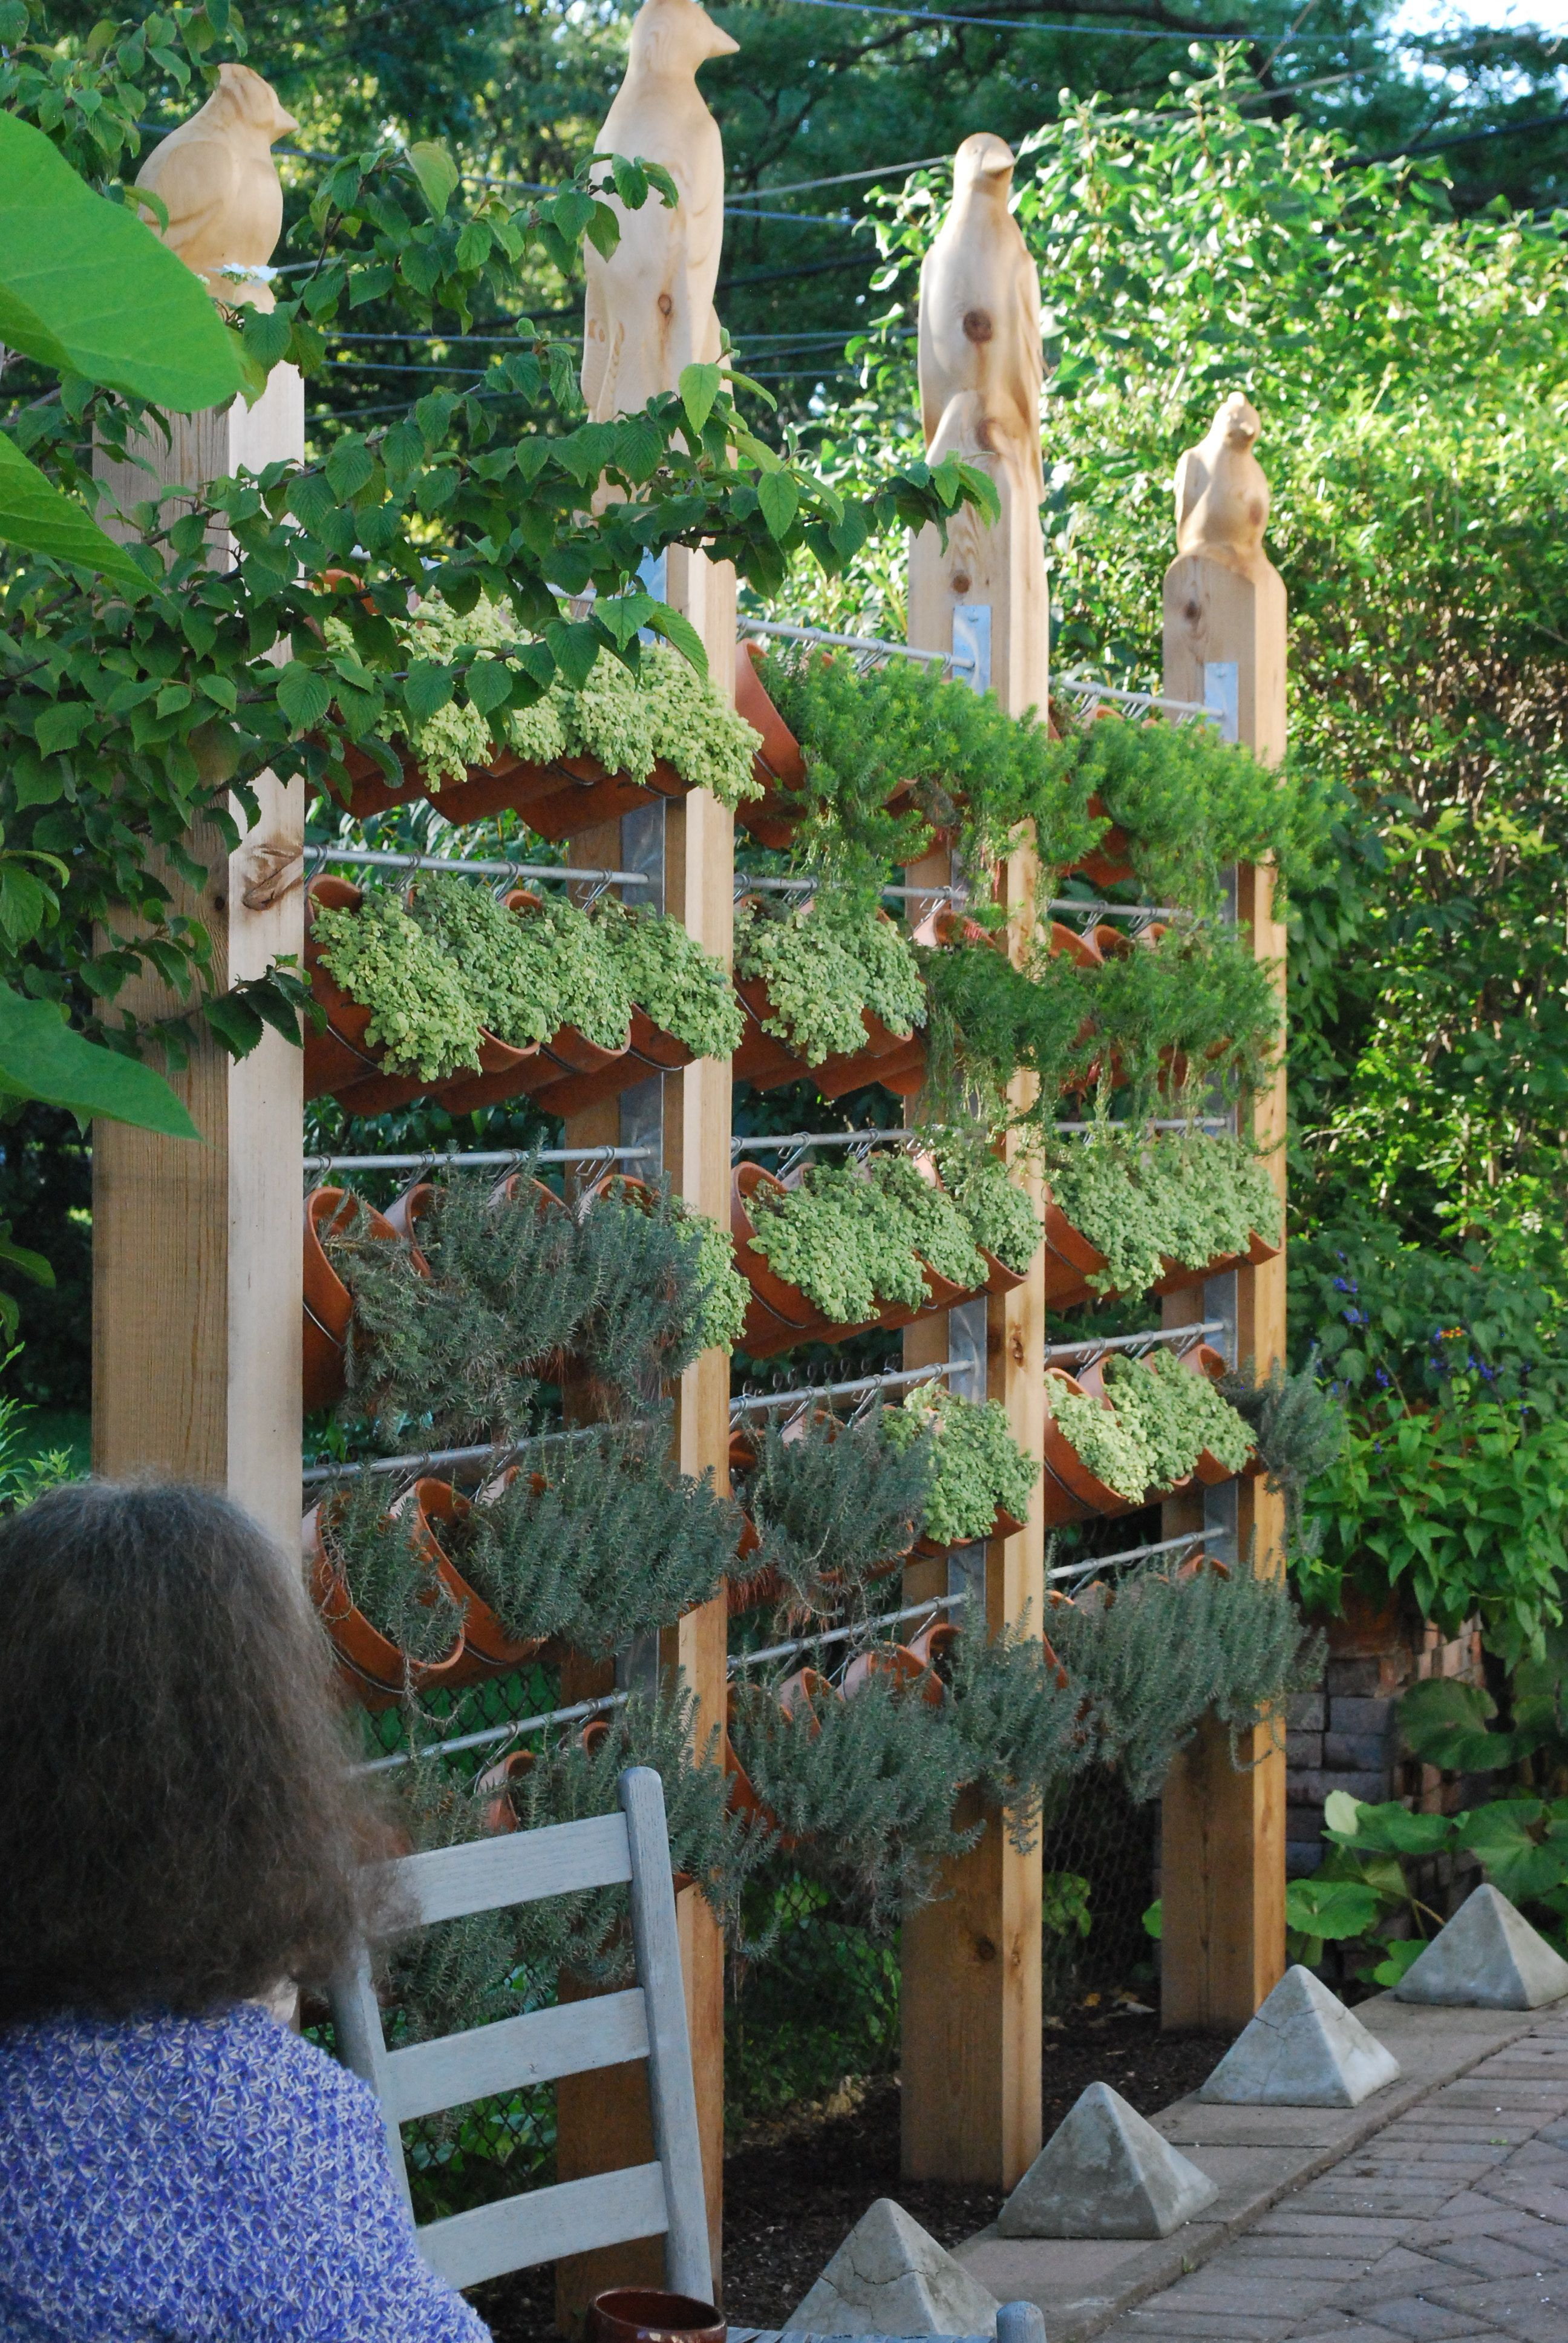 look how many plants can fit into this vertical garden space